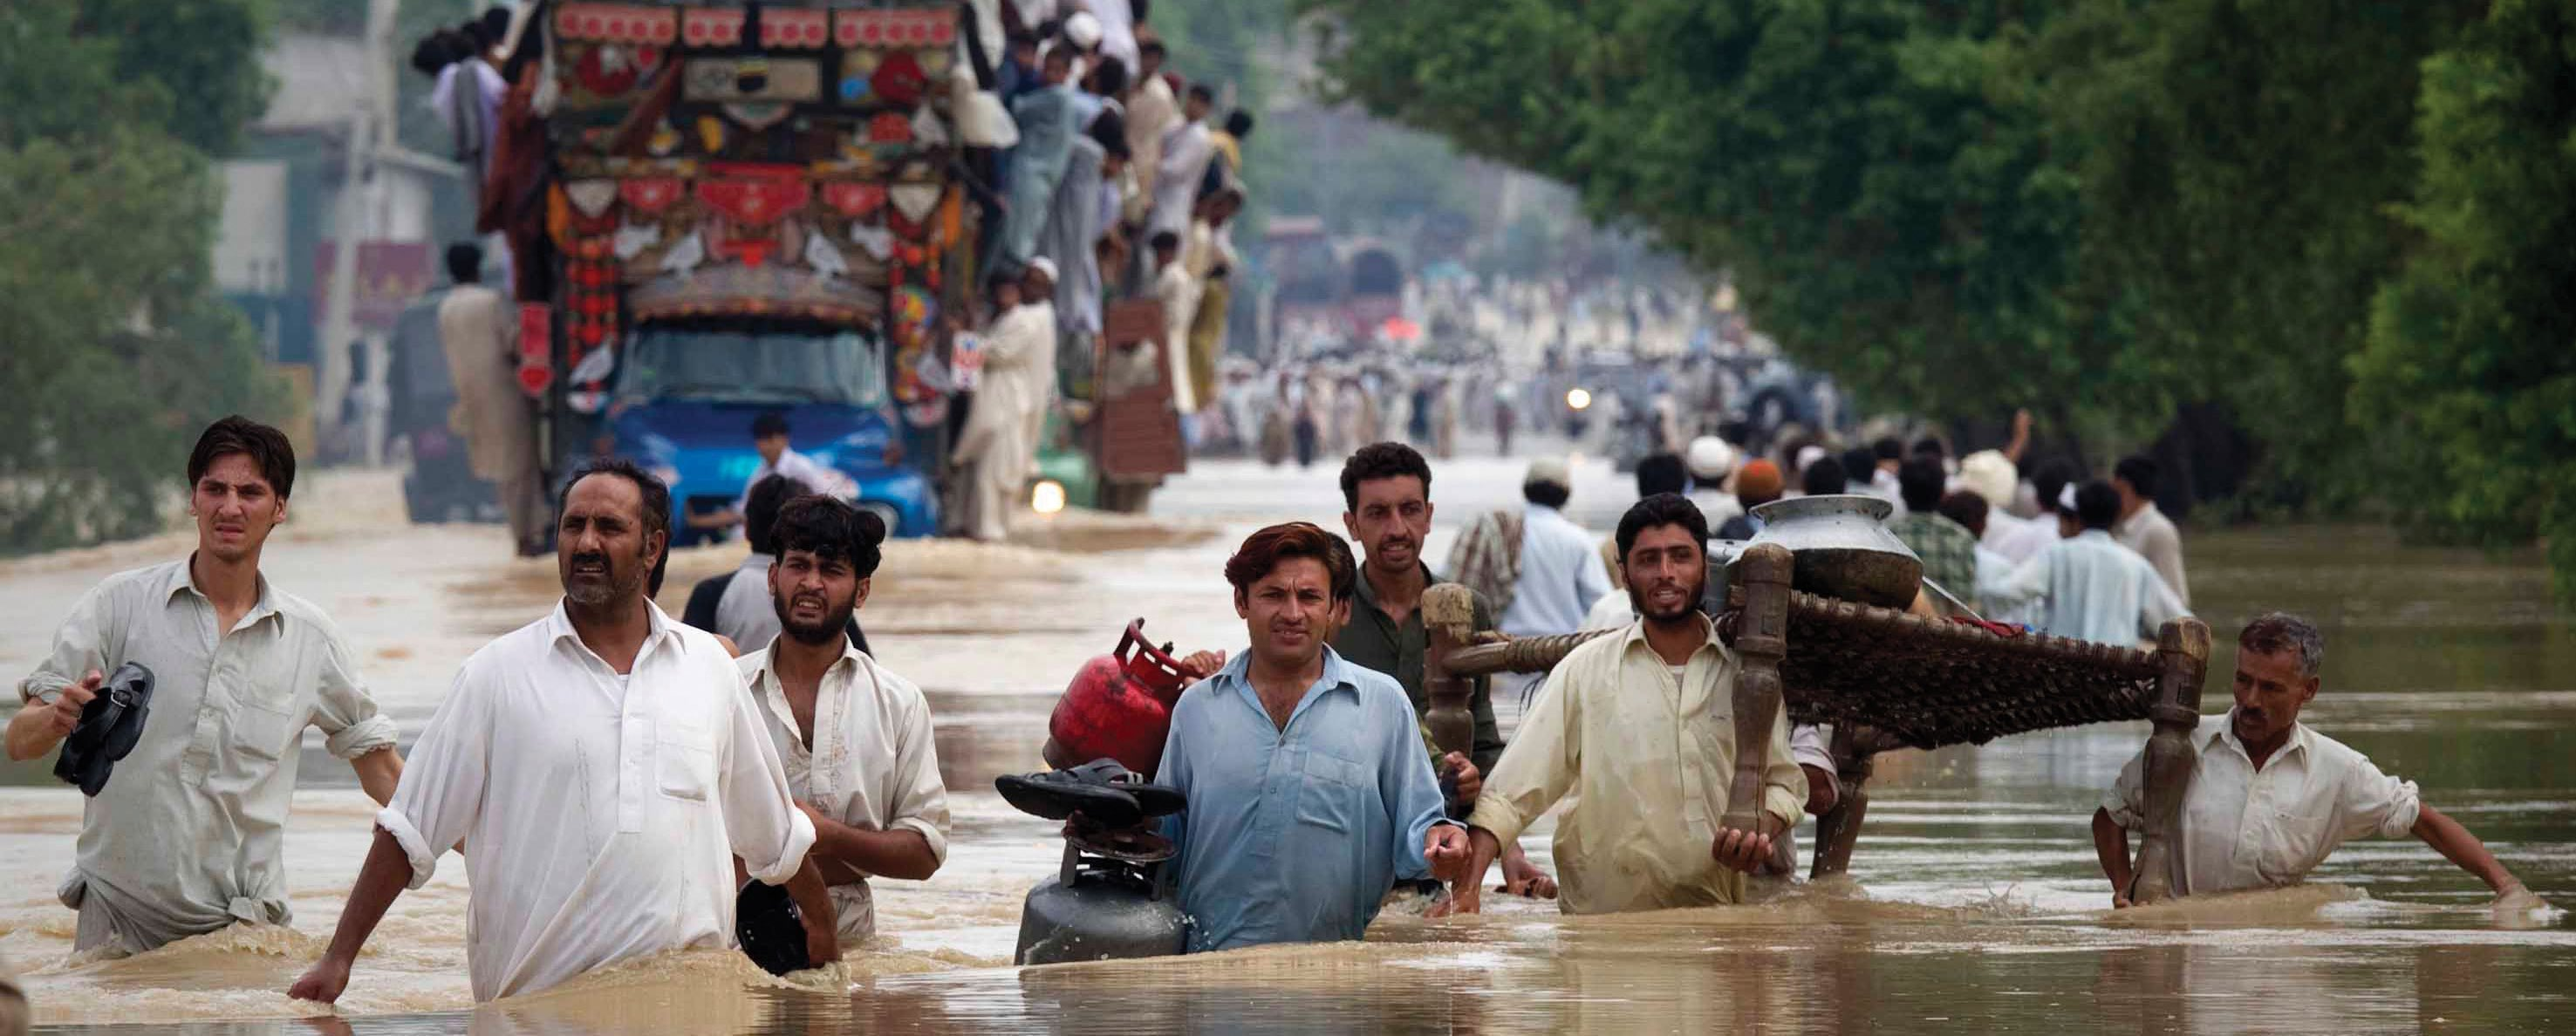 Residents carry their belongings through a flooded road in Risalpur, located in Nowshera District, in Pakistan's Northwest Frontier Province July 30, 2010. About 150 people have been killed by flashfloods and bad weather in Pakistan in the last week, with the country's northwest and Baluchistan provinces bearing the brunt of the storms, officials said on Thursday. REUTERS/Adrees Latif (PAKISTAN - Tags: DISASTER ENVIRONMENT)